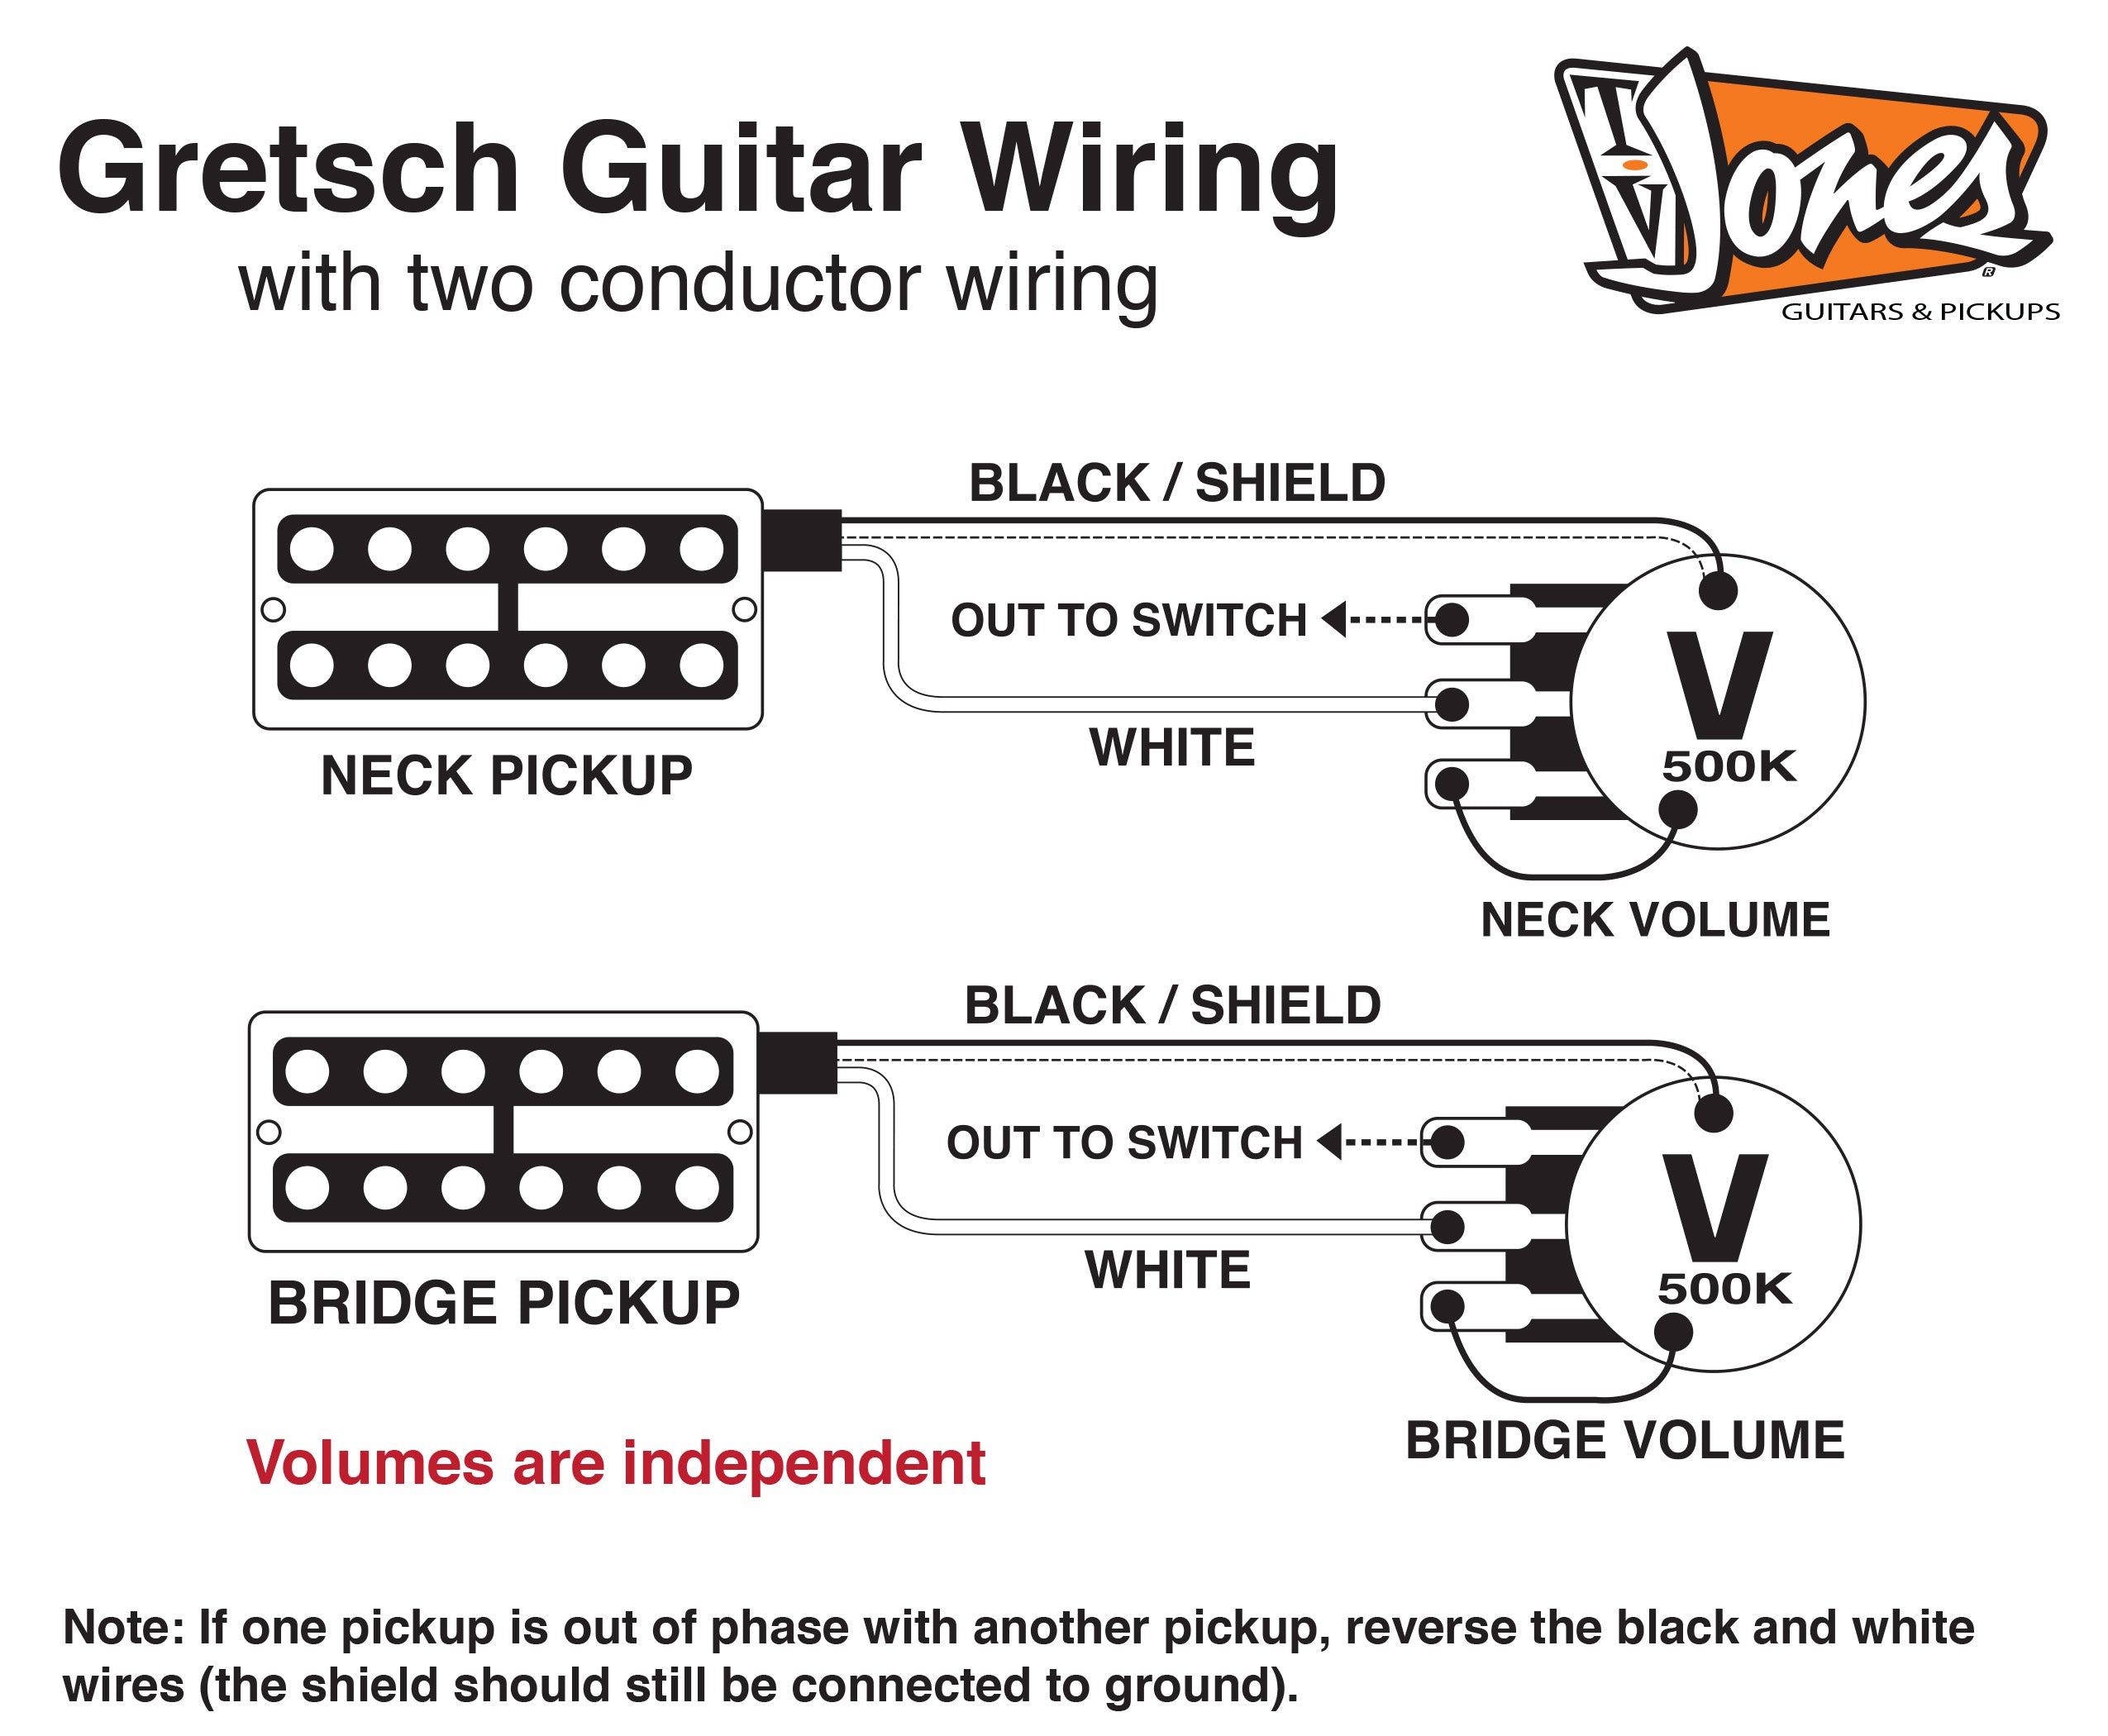 gretsch wiring diagram tv jones product dimensions  tv jones product dimensions